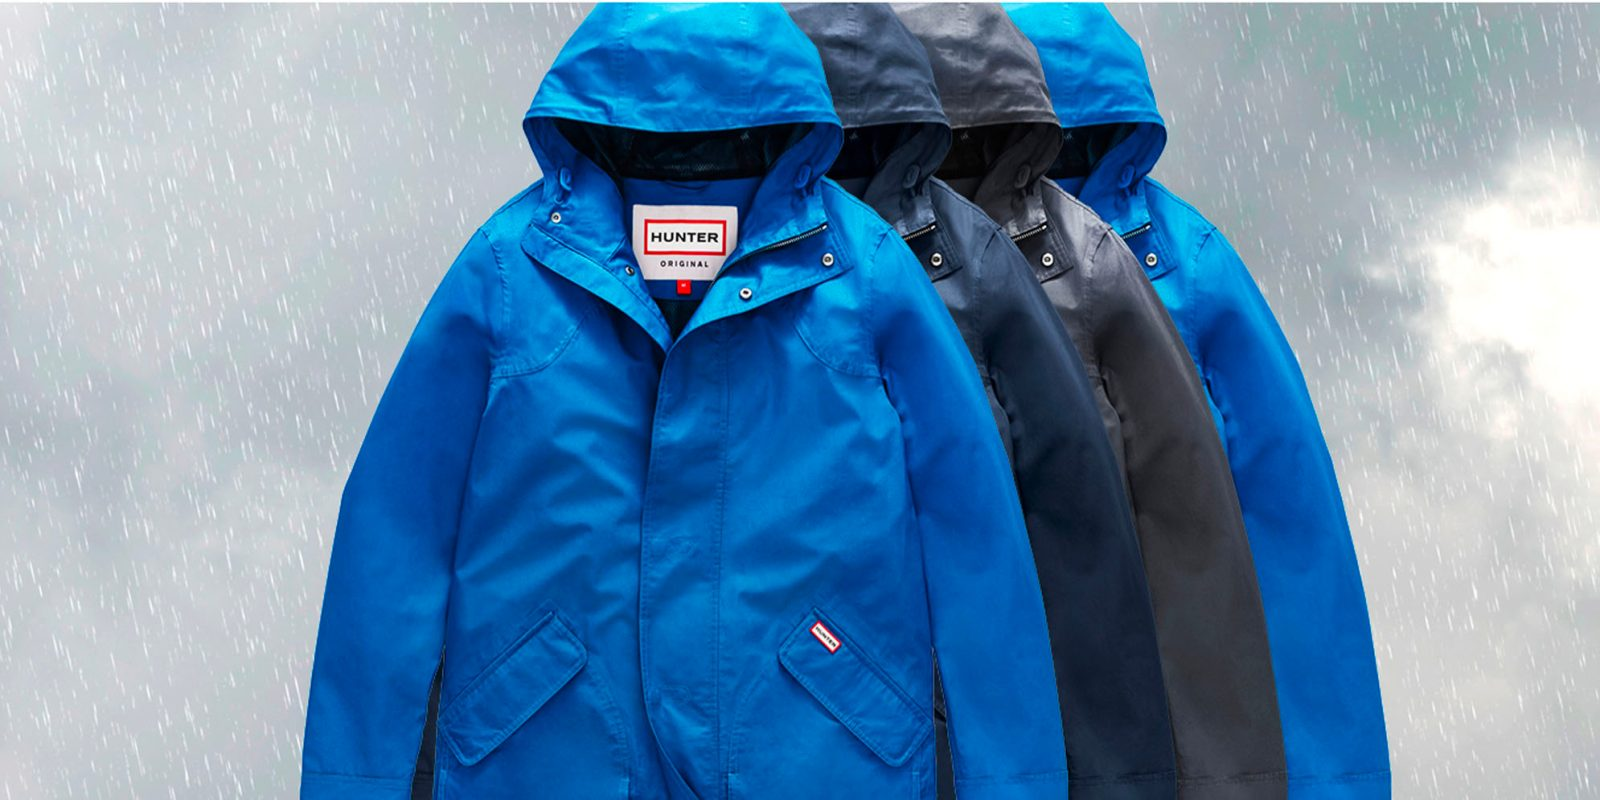 a37ba742fad3 The Best Spring Rain Jackets for Men to Keep you Dry - 9to5Toys